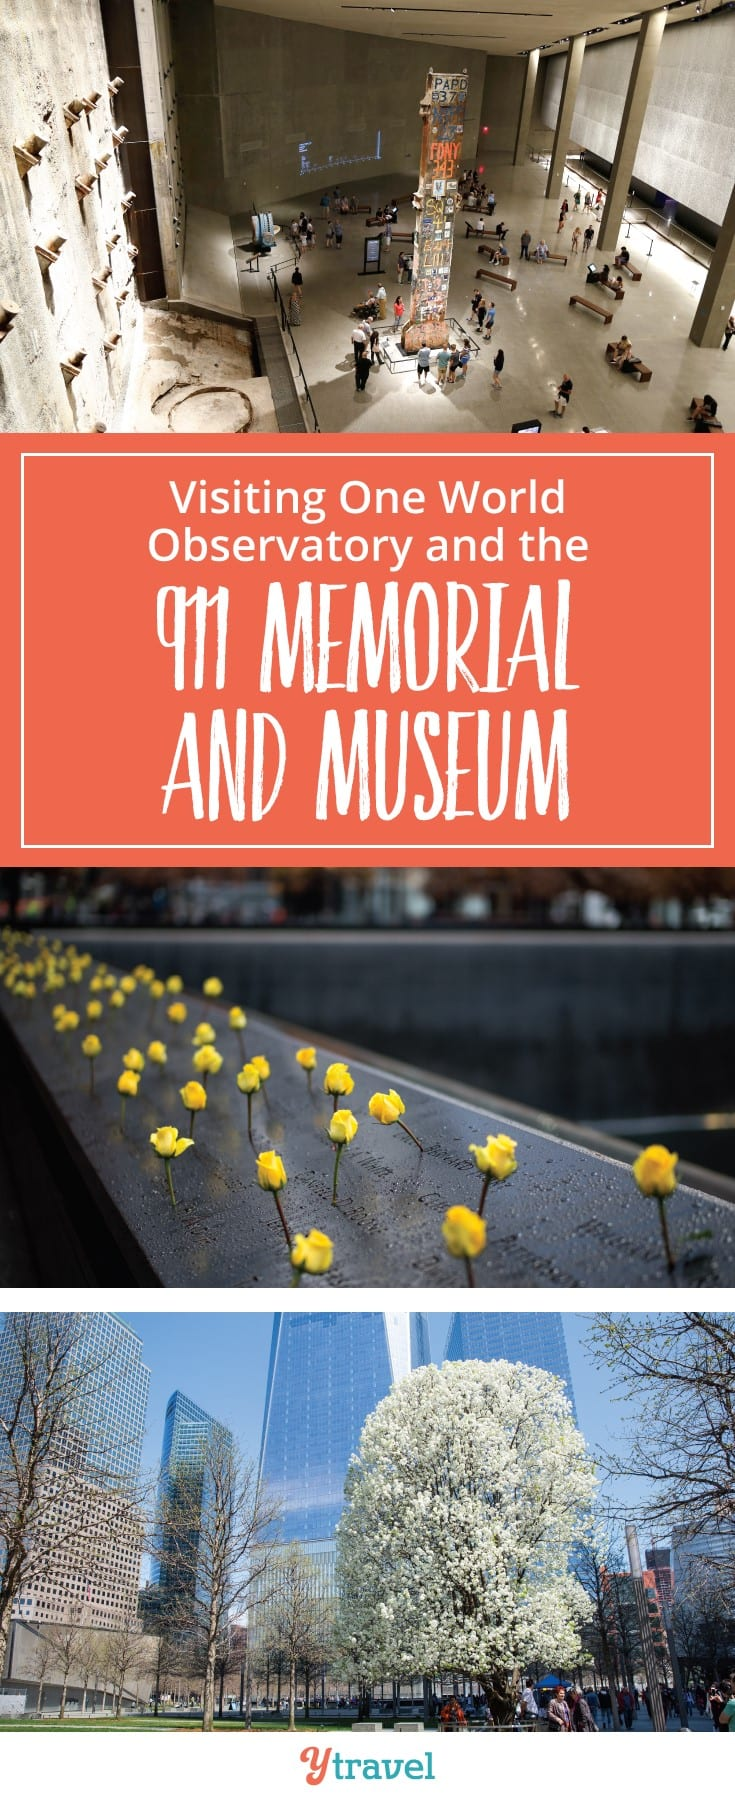 Thinking of visiting the 911 Memorial and Museum at the World Trade Center in New York City? Worried about taking kids? I share my thoughts on visiting the One World Trade Center, including the Oculus and One World Observatory and how it gave me hope #NewYork #NewYorkTravel #NewYorkCity #911Museum #911Memorial